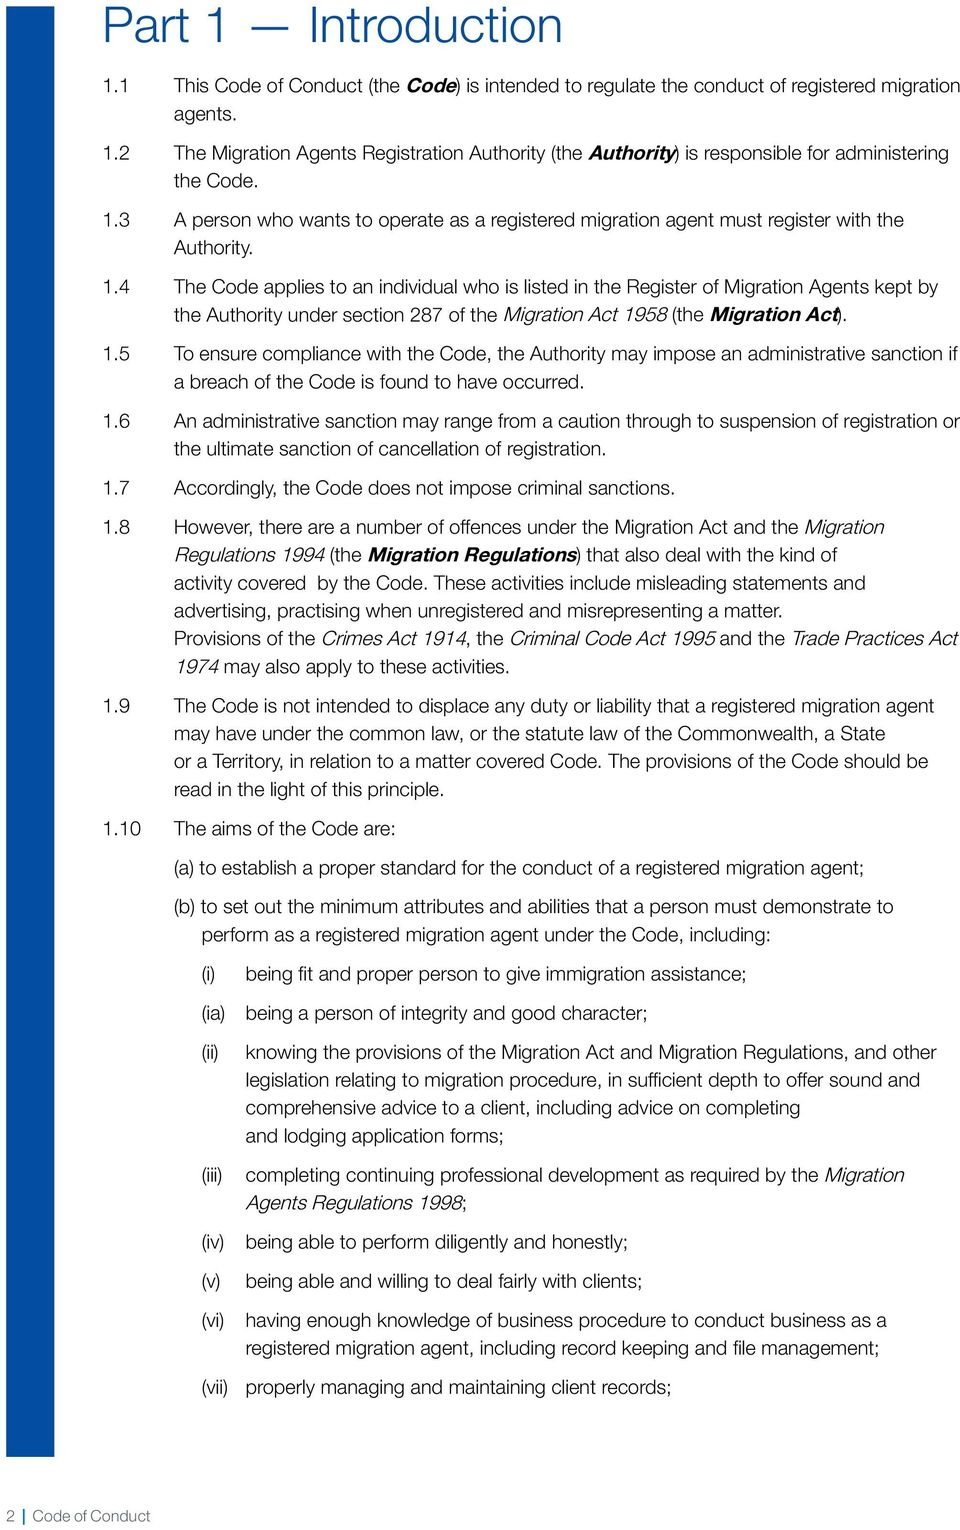 4 The Code applies to an individual who is listed in the Register of Migration Agents kept by the Authority under section 287 of the Migration Act 19